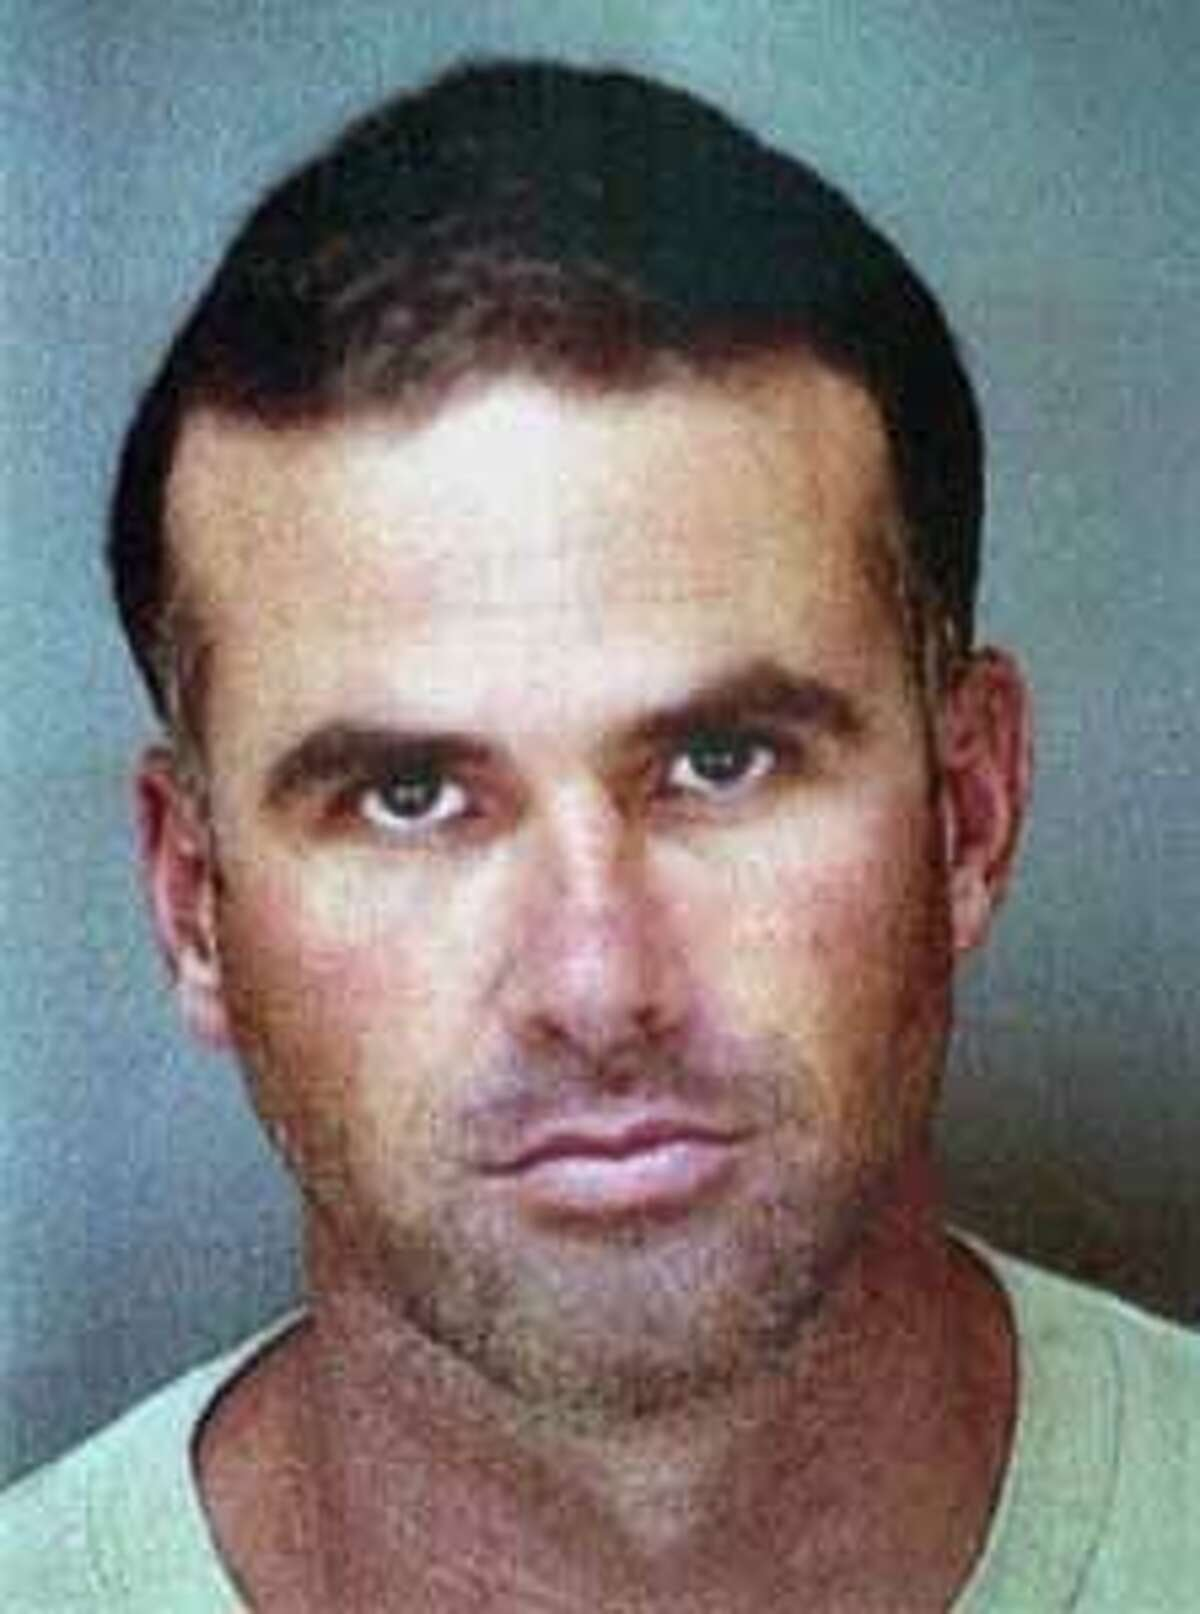 FILE--Motel handyman Cary Stayner shown in this July 29, 1999 booking mug, was charged Wednesday, Oct. 20, 1999 with capital murder in the killings of three Yosemite sightseers. The complaint filed by Mariposa County District Attorney Christine Johnson charges Stayner of three counts of murder as well as special circumstances that could bring the death penalty. (AP Photo/Fresno Bee)